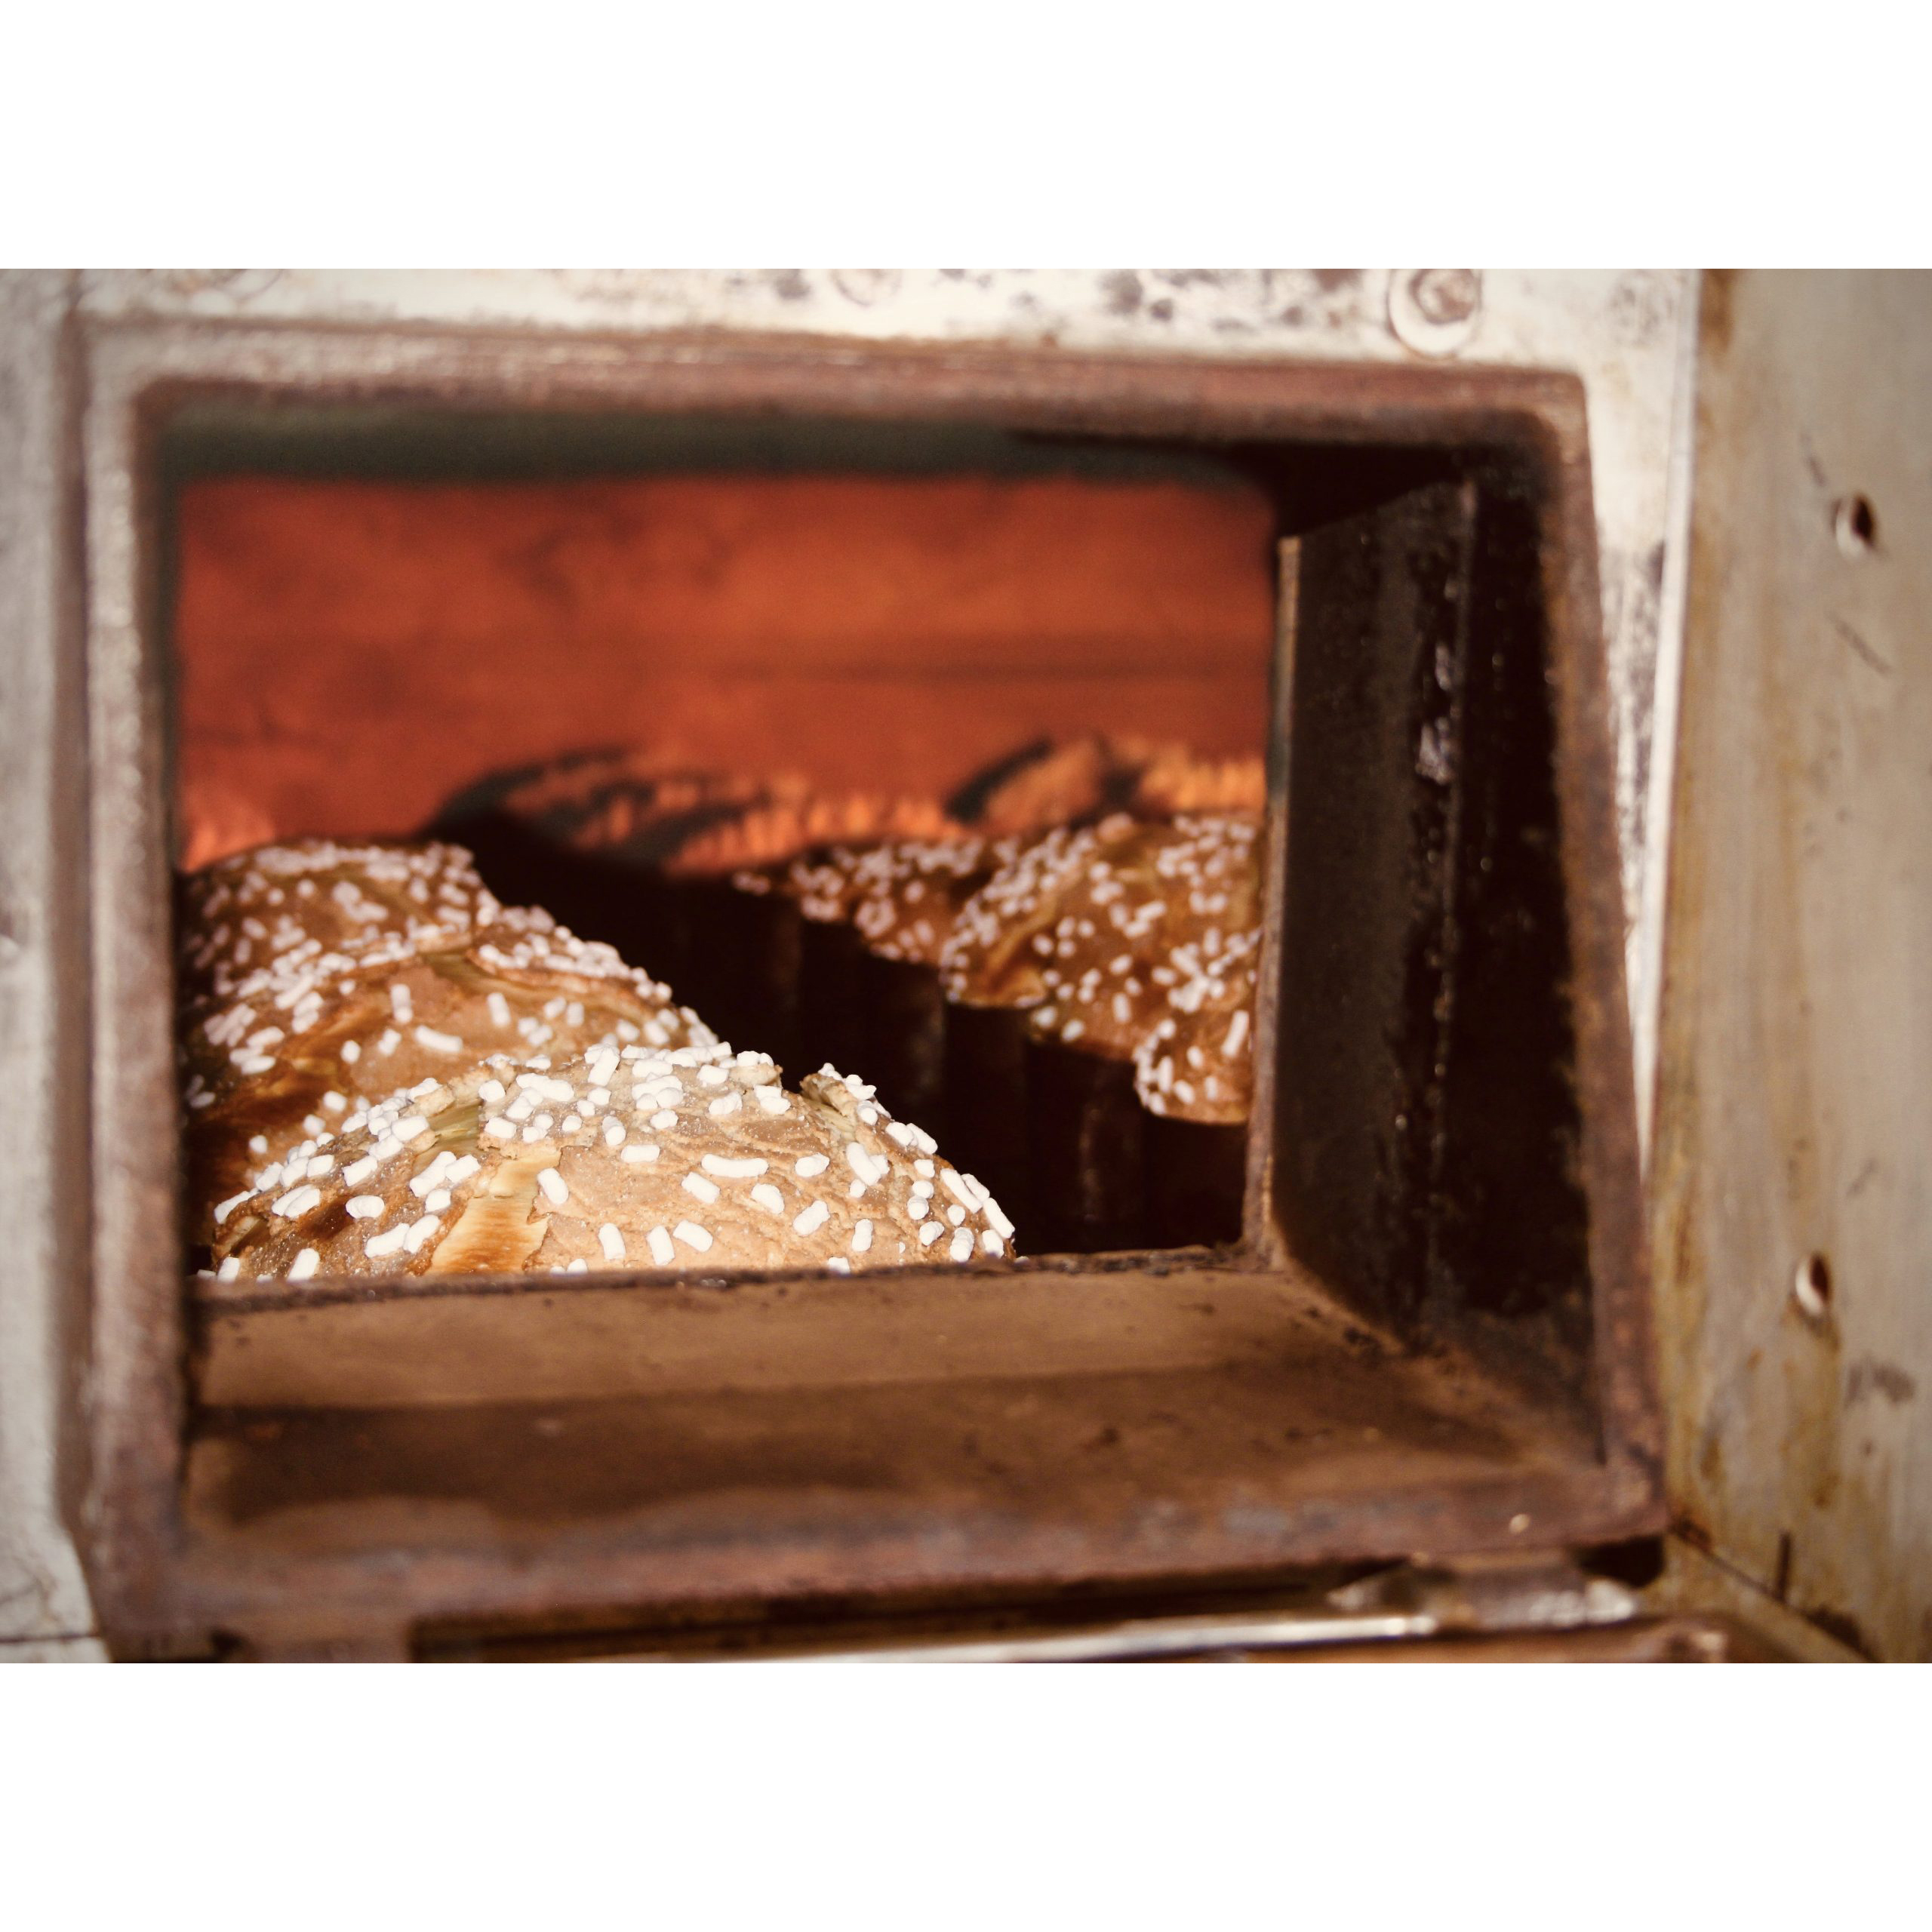 Colomba-1-scaled